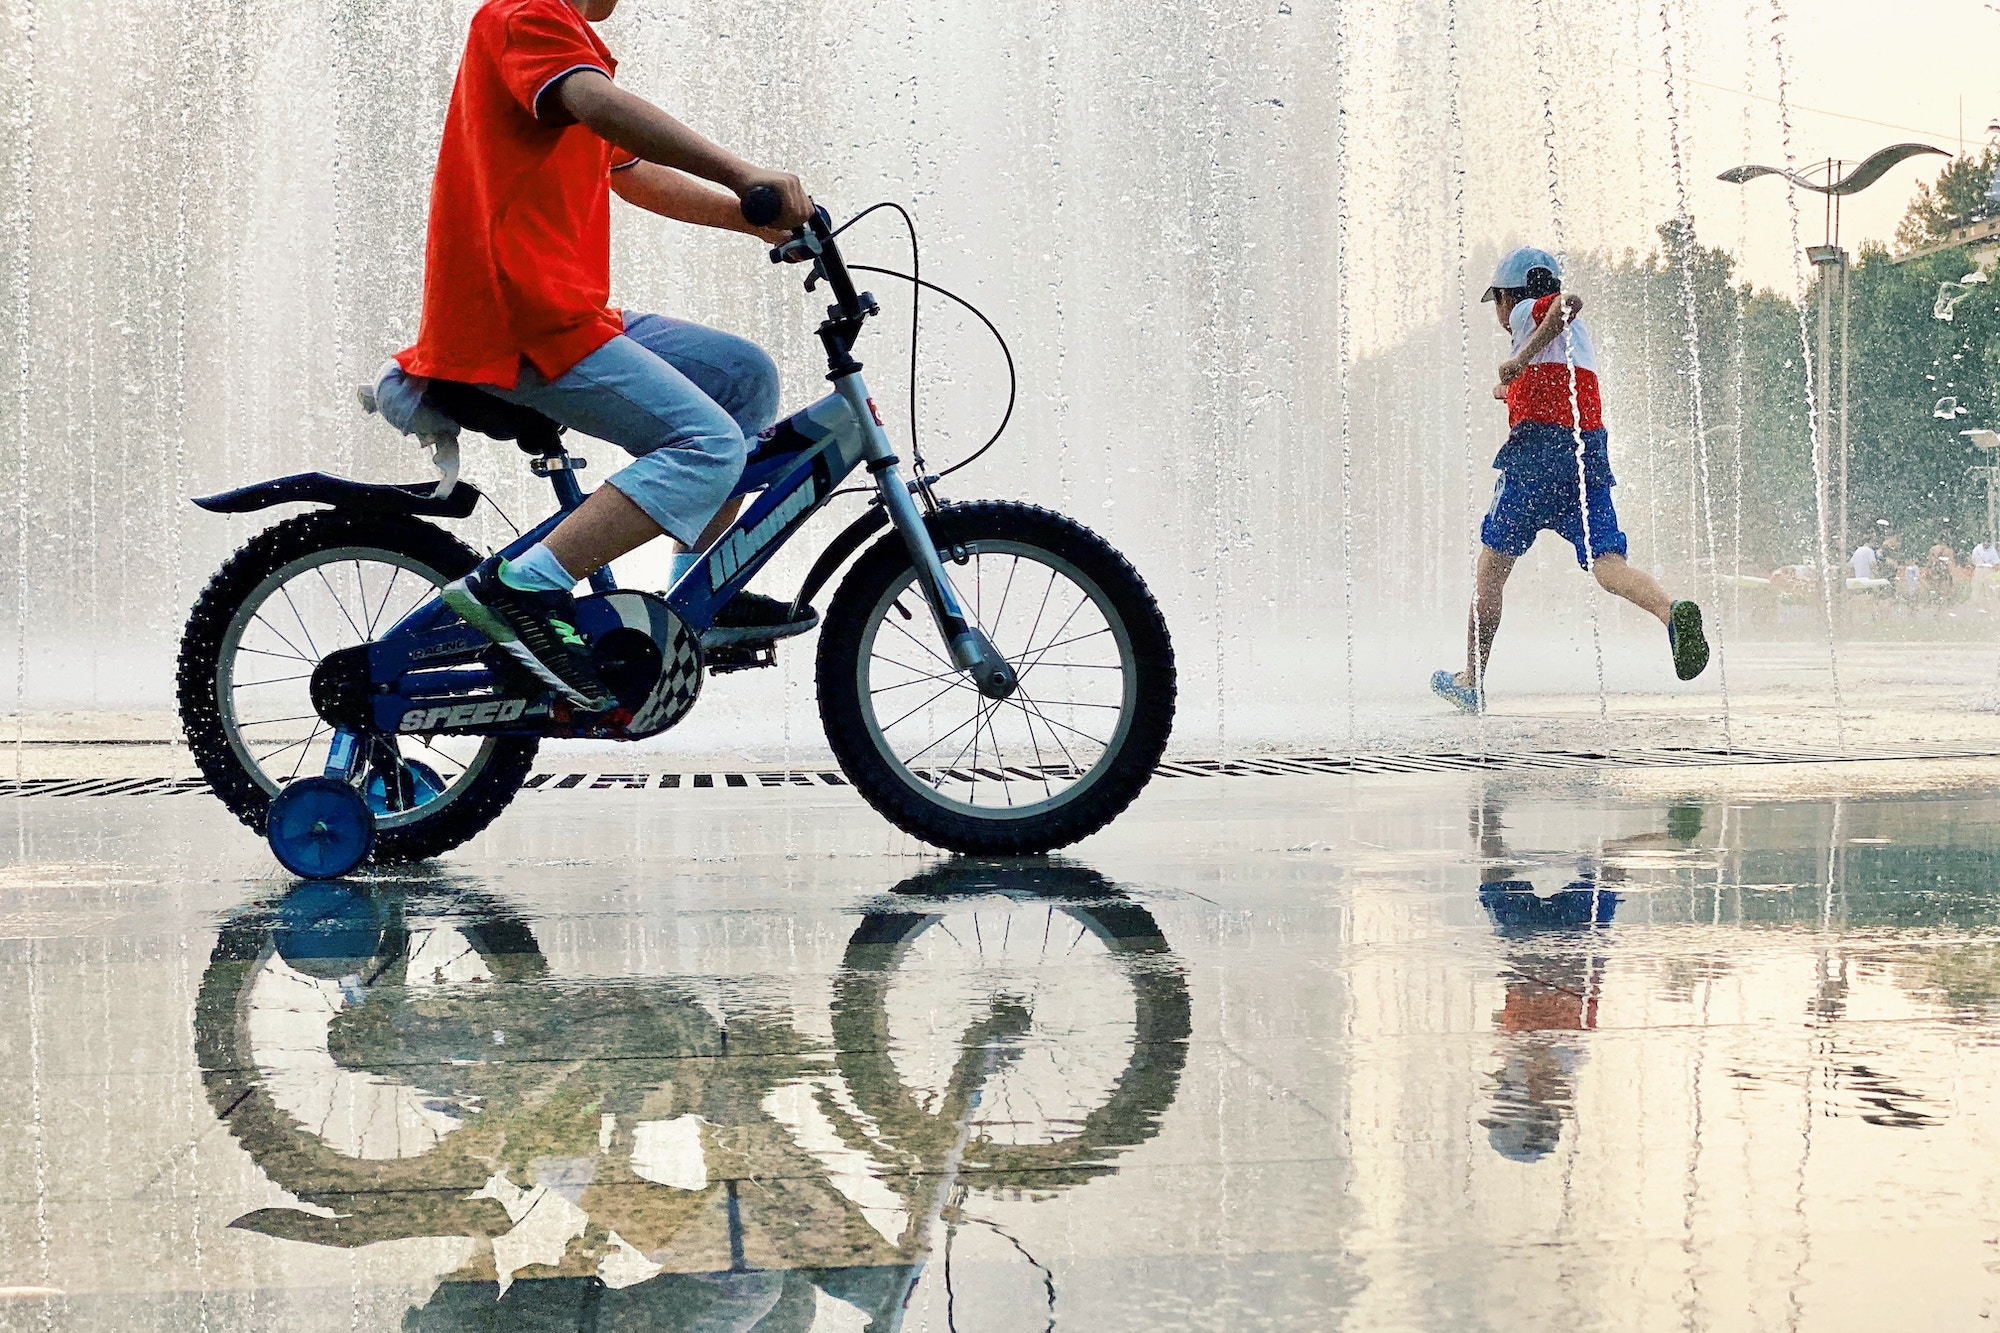 Children running into water fountains, a child on a bike with stabilisers rides in the foreground.